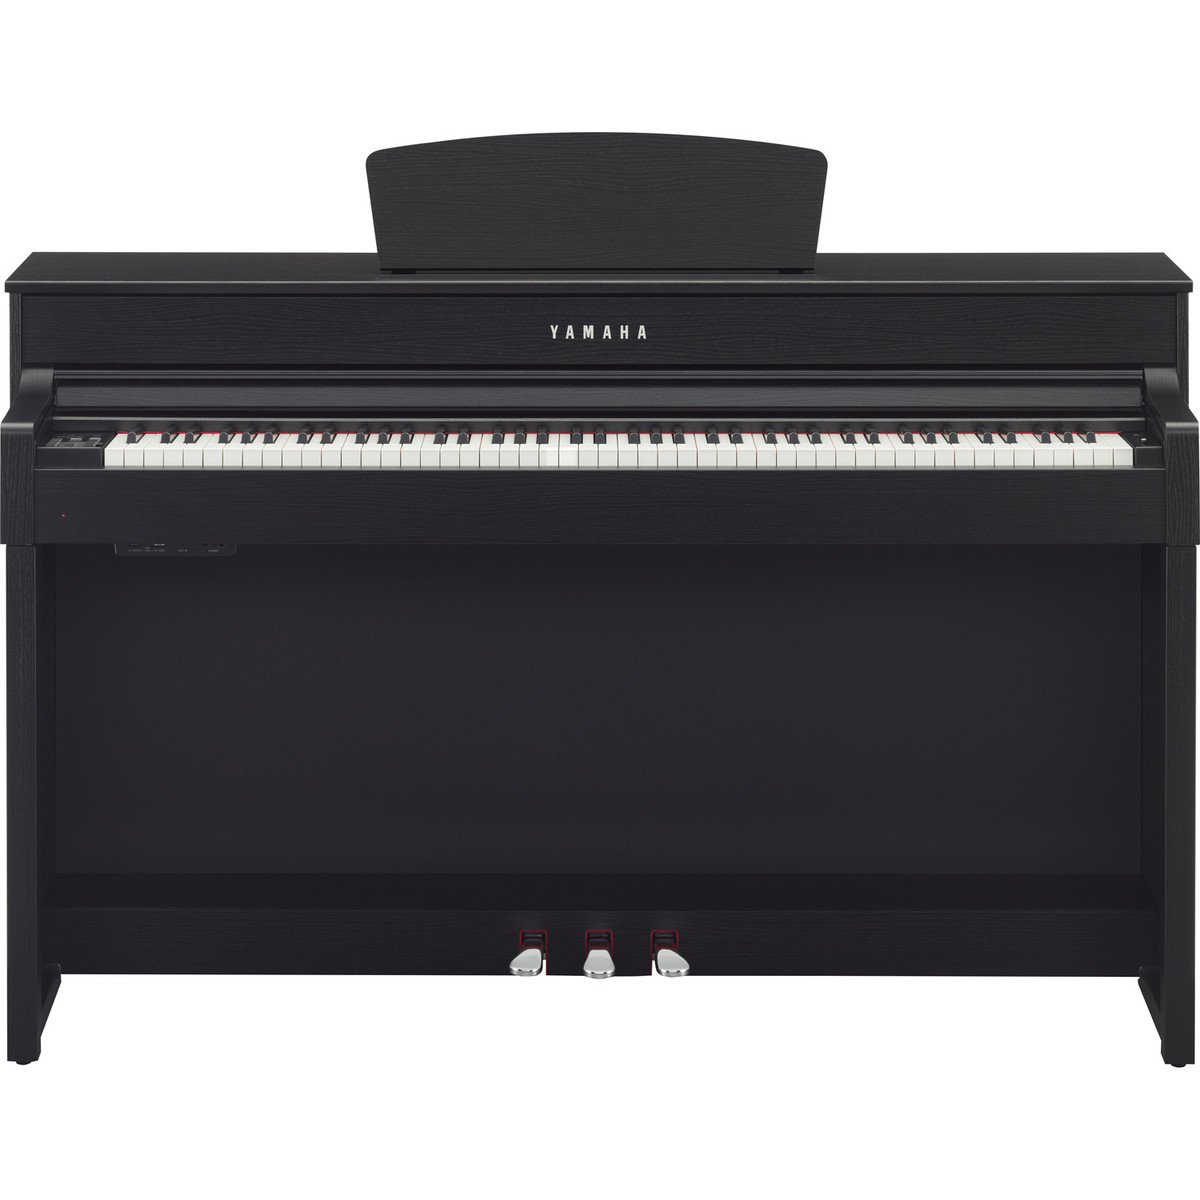 Yamaha clavinova clp535 digital piano black walnut at for Yamaha piano com